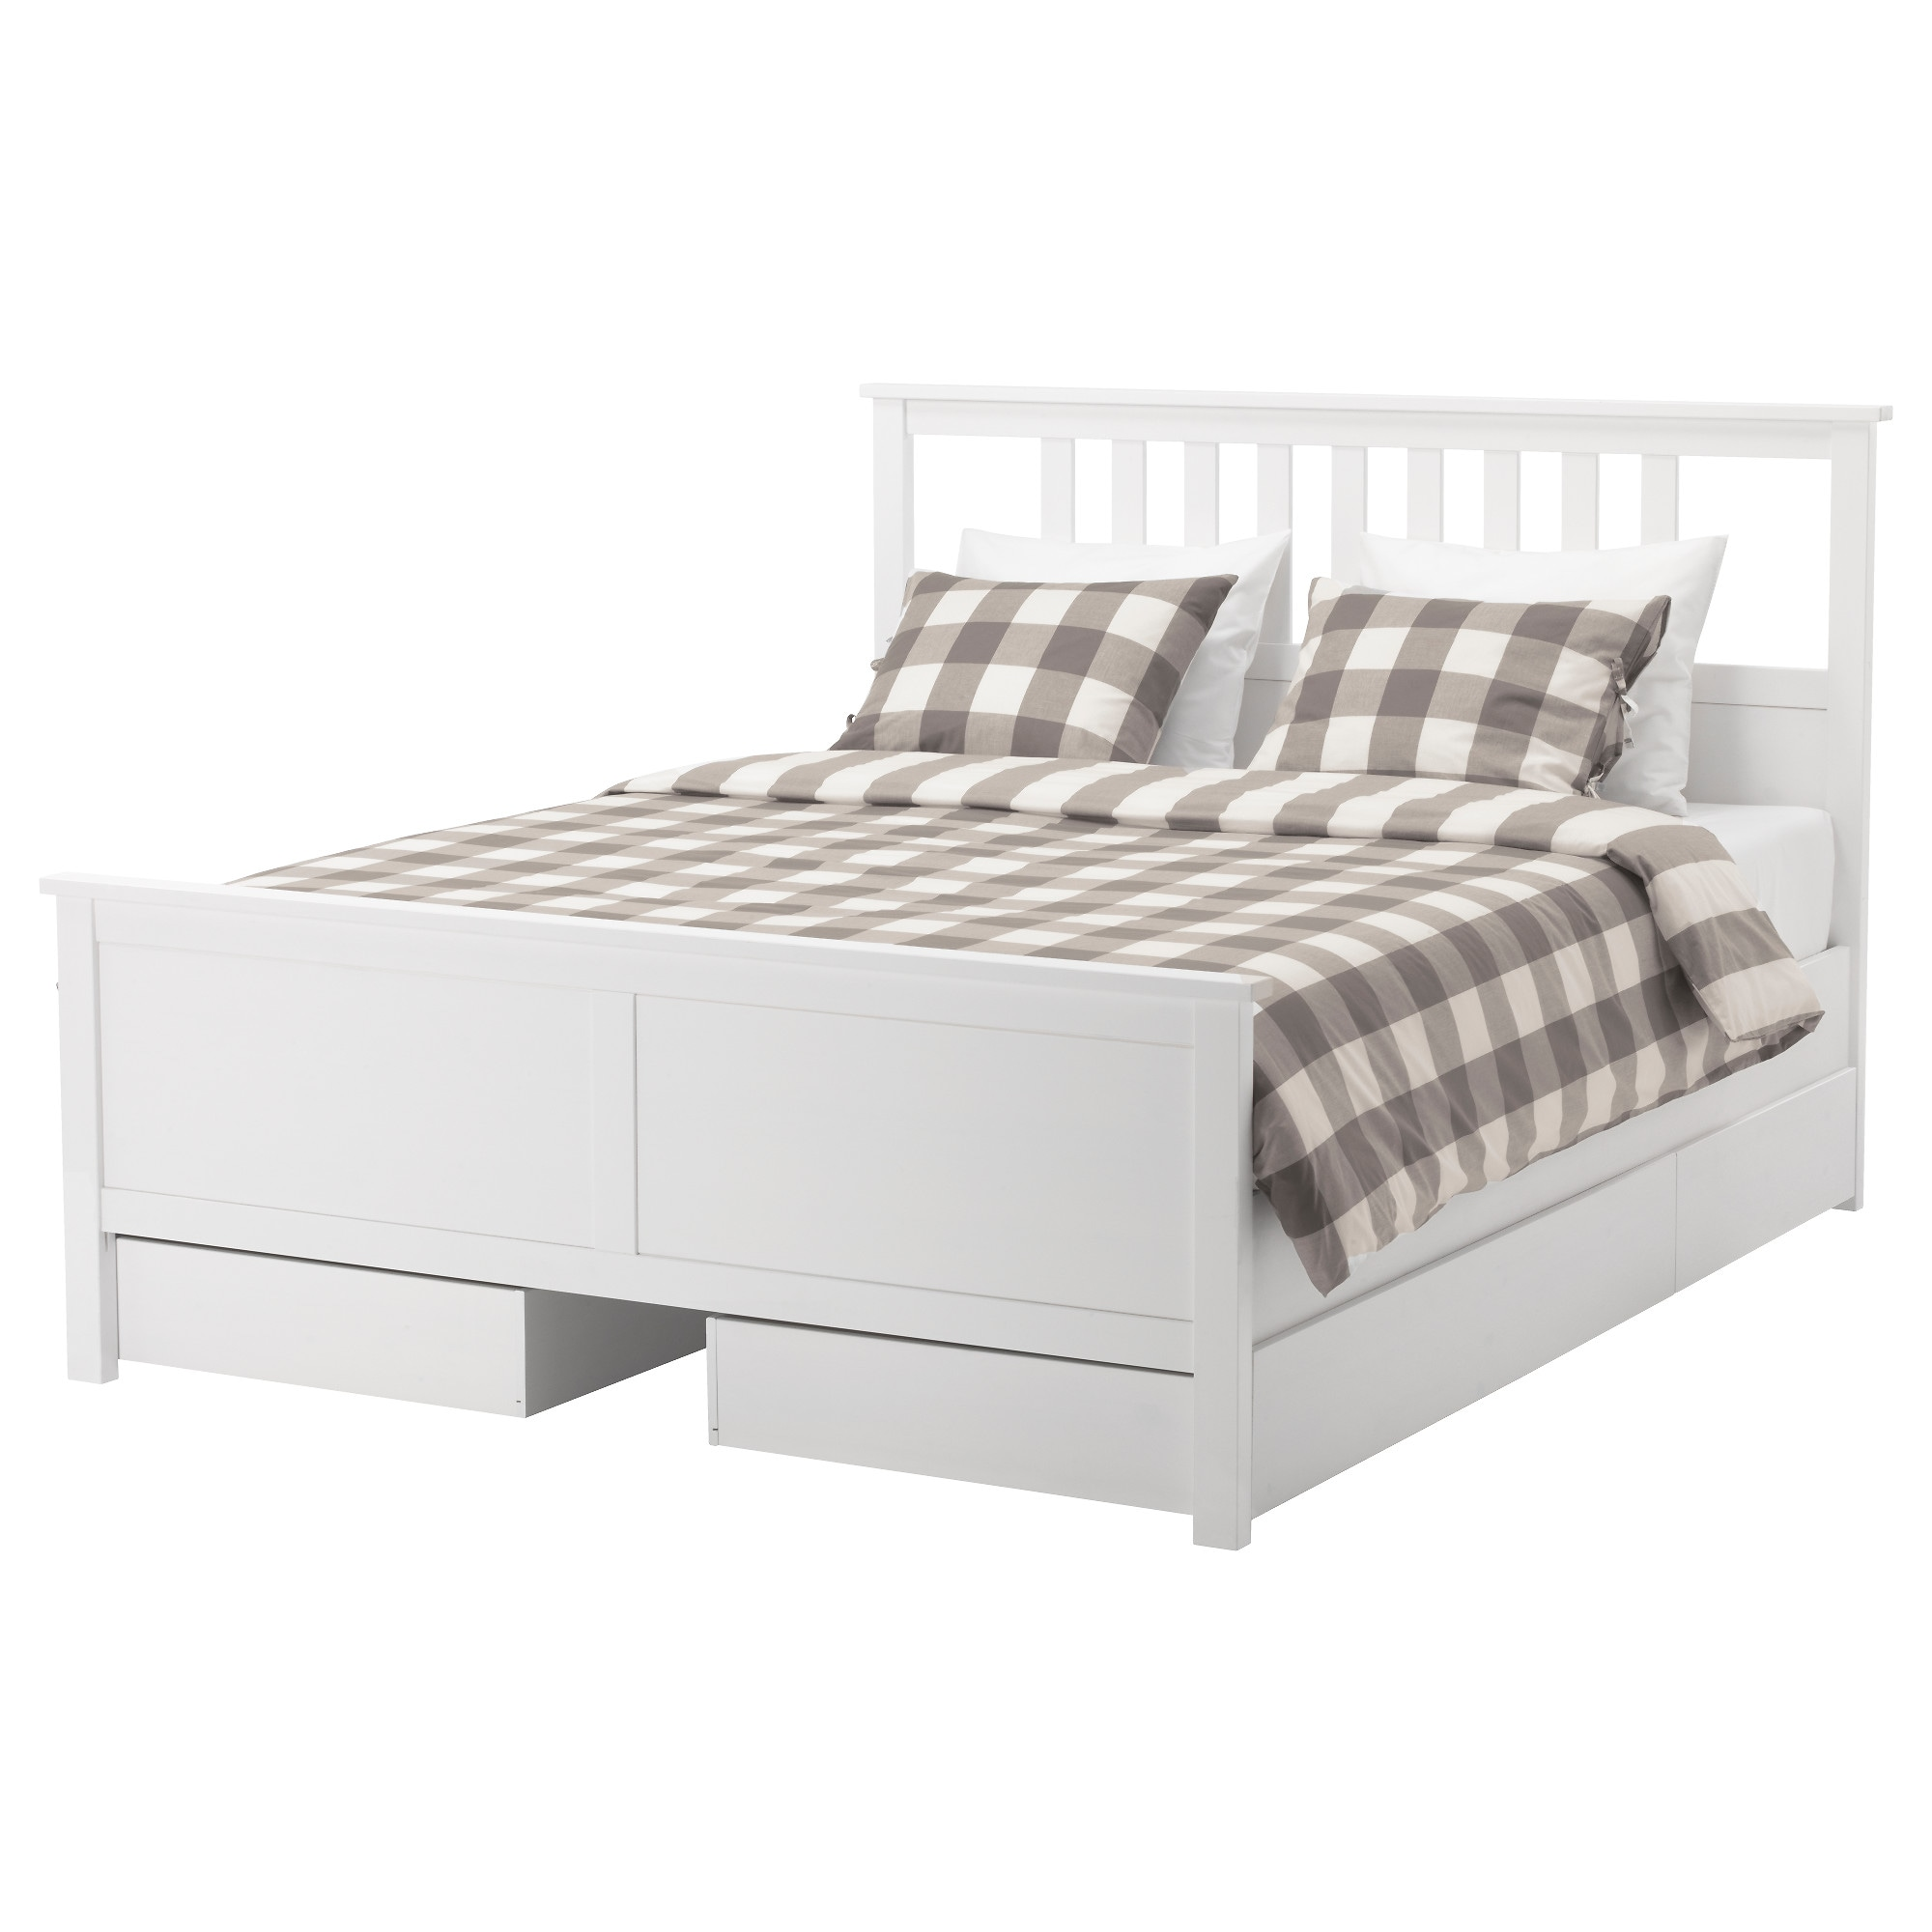 Ikea White Queen Bed ikea bed white 1379693930 white design decorating Hemnes Bed Frame With 4 Storage Boxes White Stain Lury Length 83 7